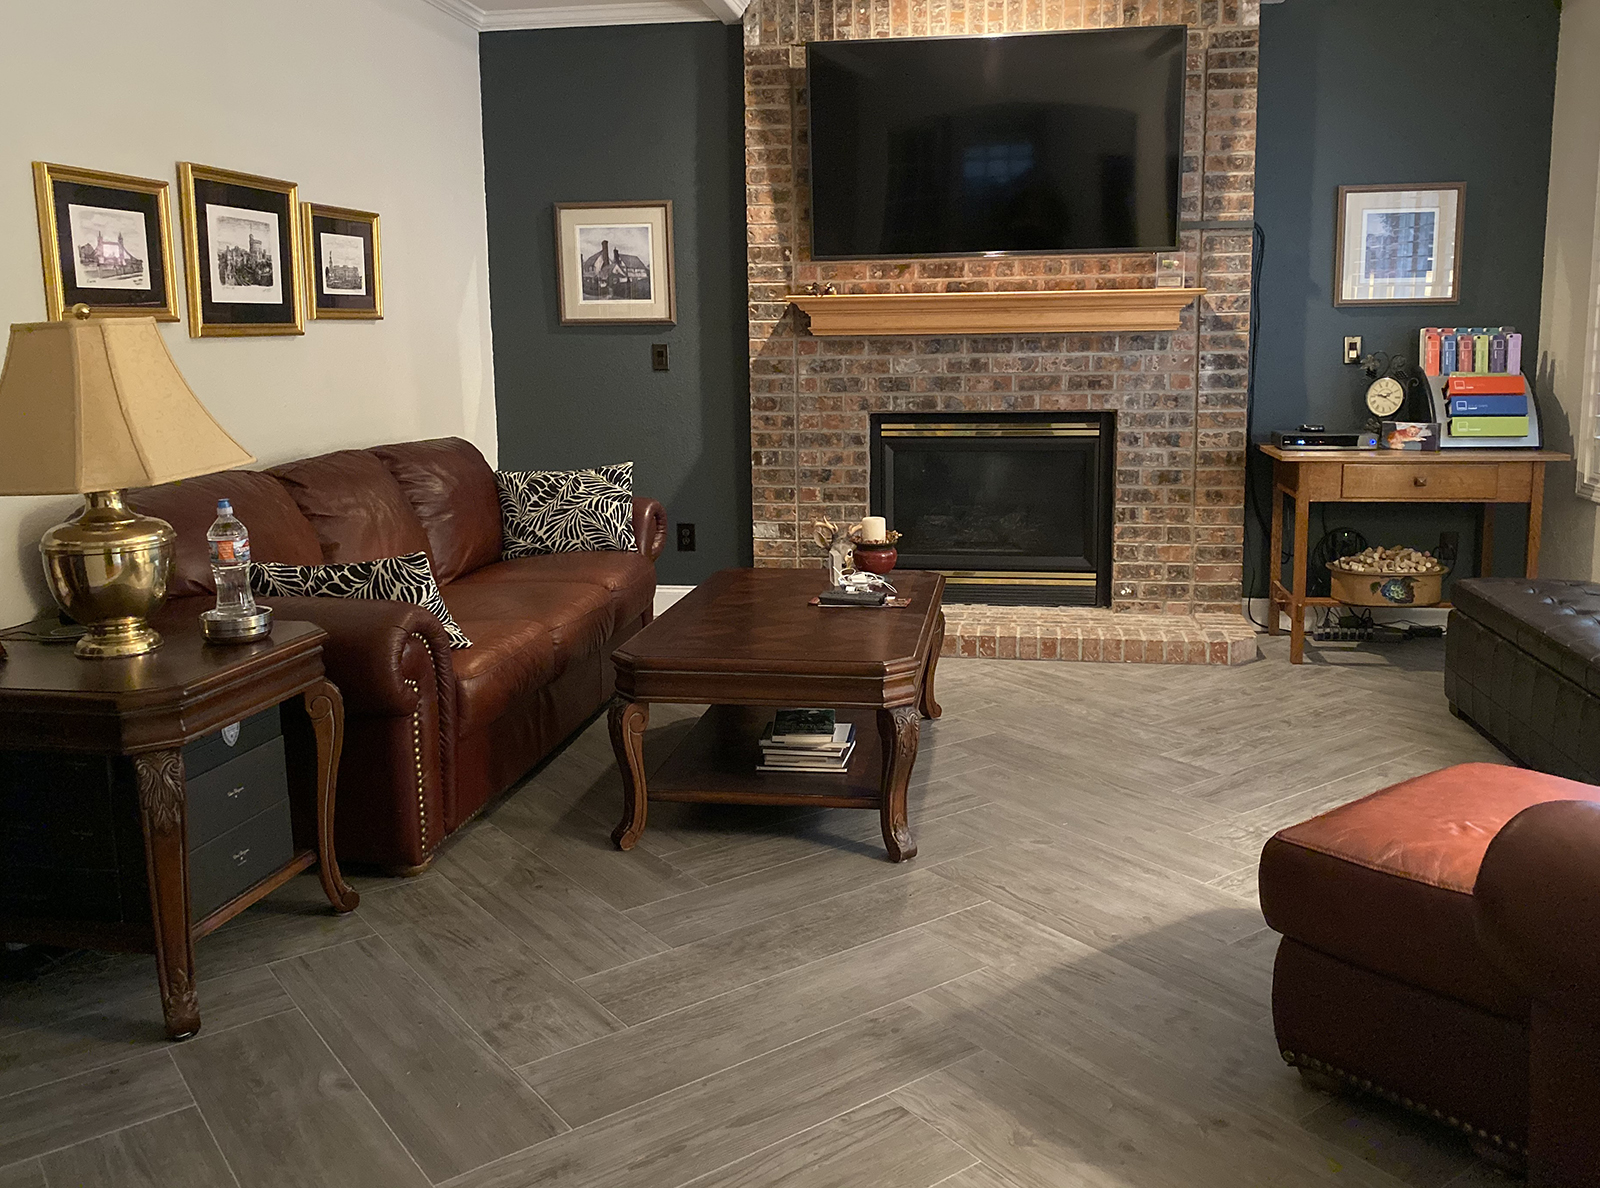 New flooring - porcelain tile in a grey wood grain. It's set in a Herringbone pattern.